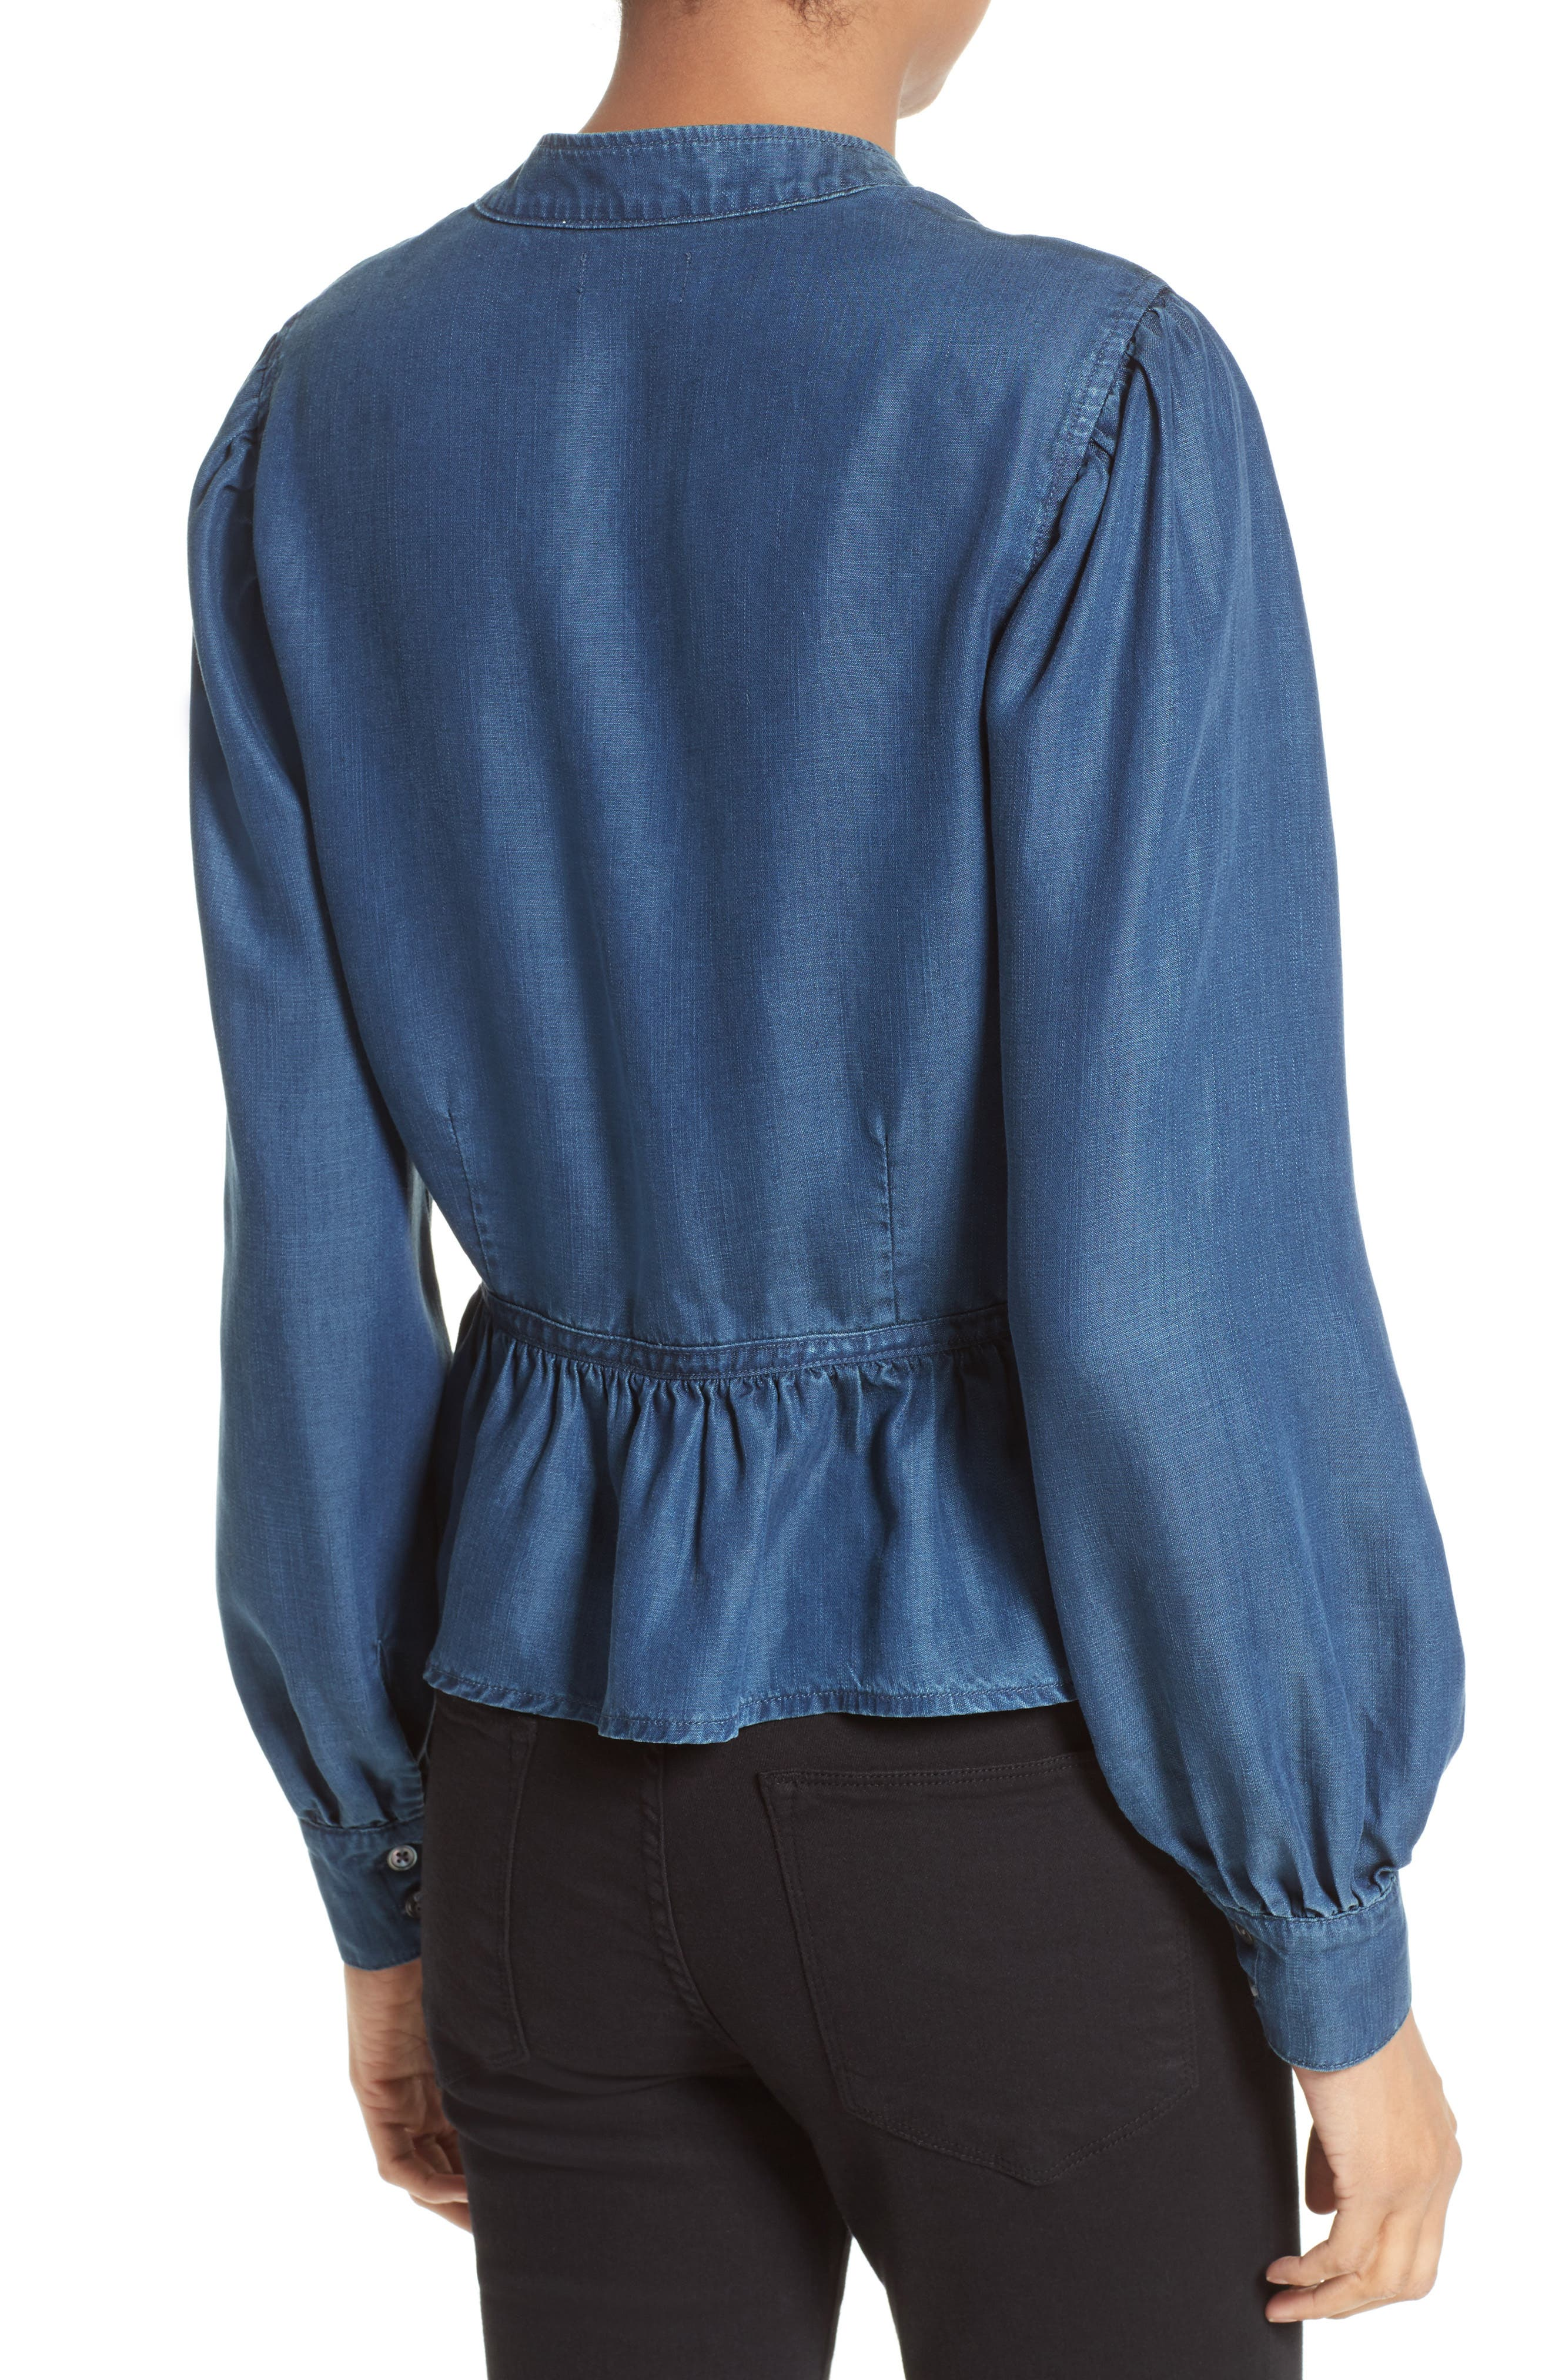 Alternate Image 3  - FRAME Chambray Peplum Top (Nordstrom Exclusive)